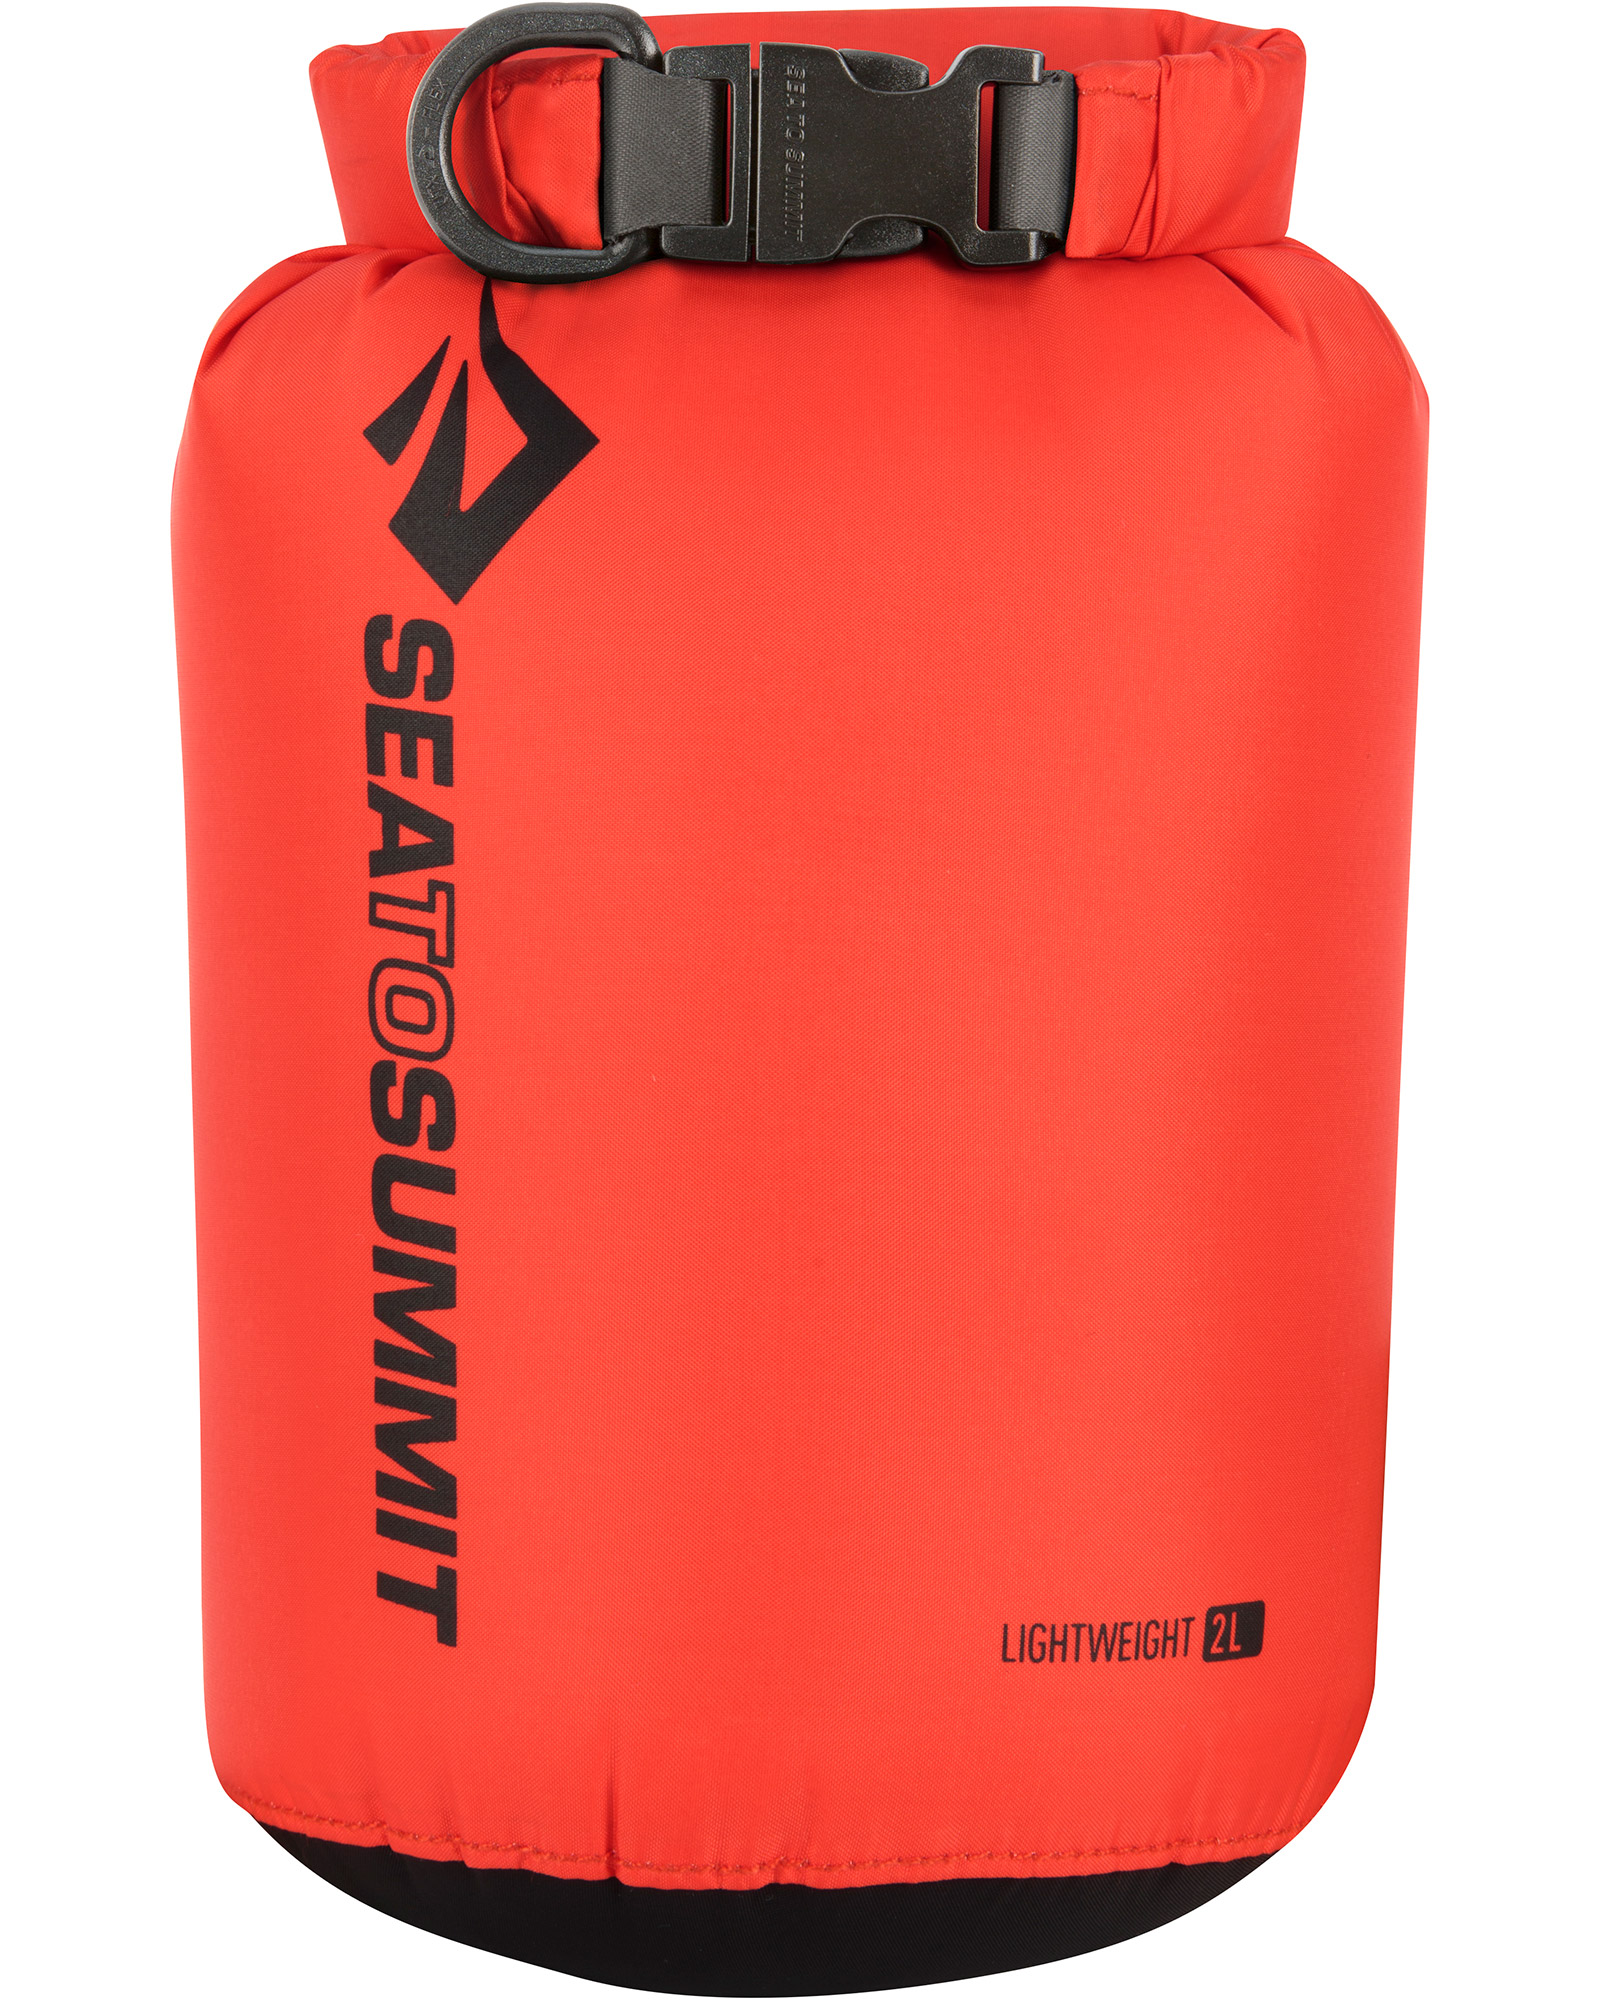 Product image of Sea to Summit Lightweight Dry Sack 2L